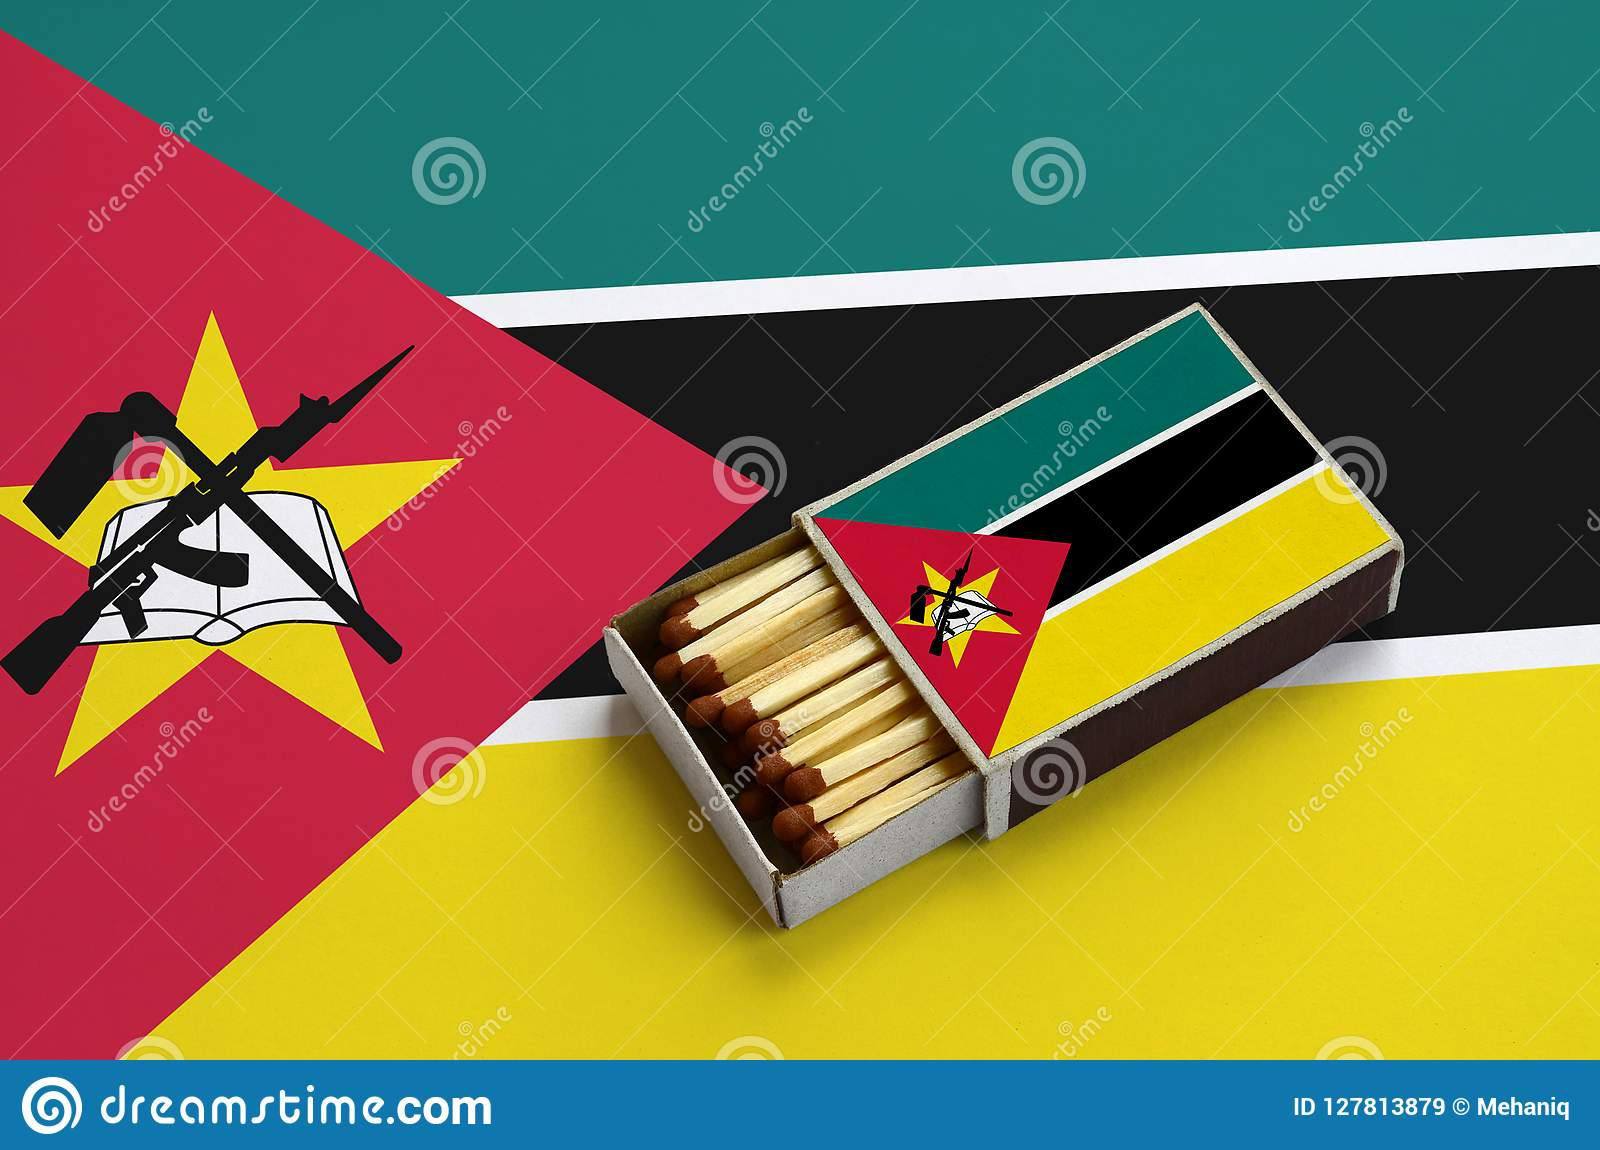 Mozambique Flag Is Shown In An Open Matchbox, Which Is